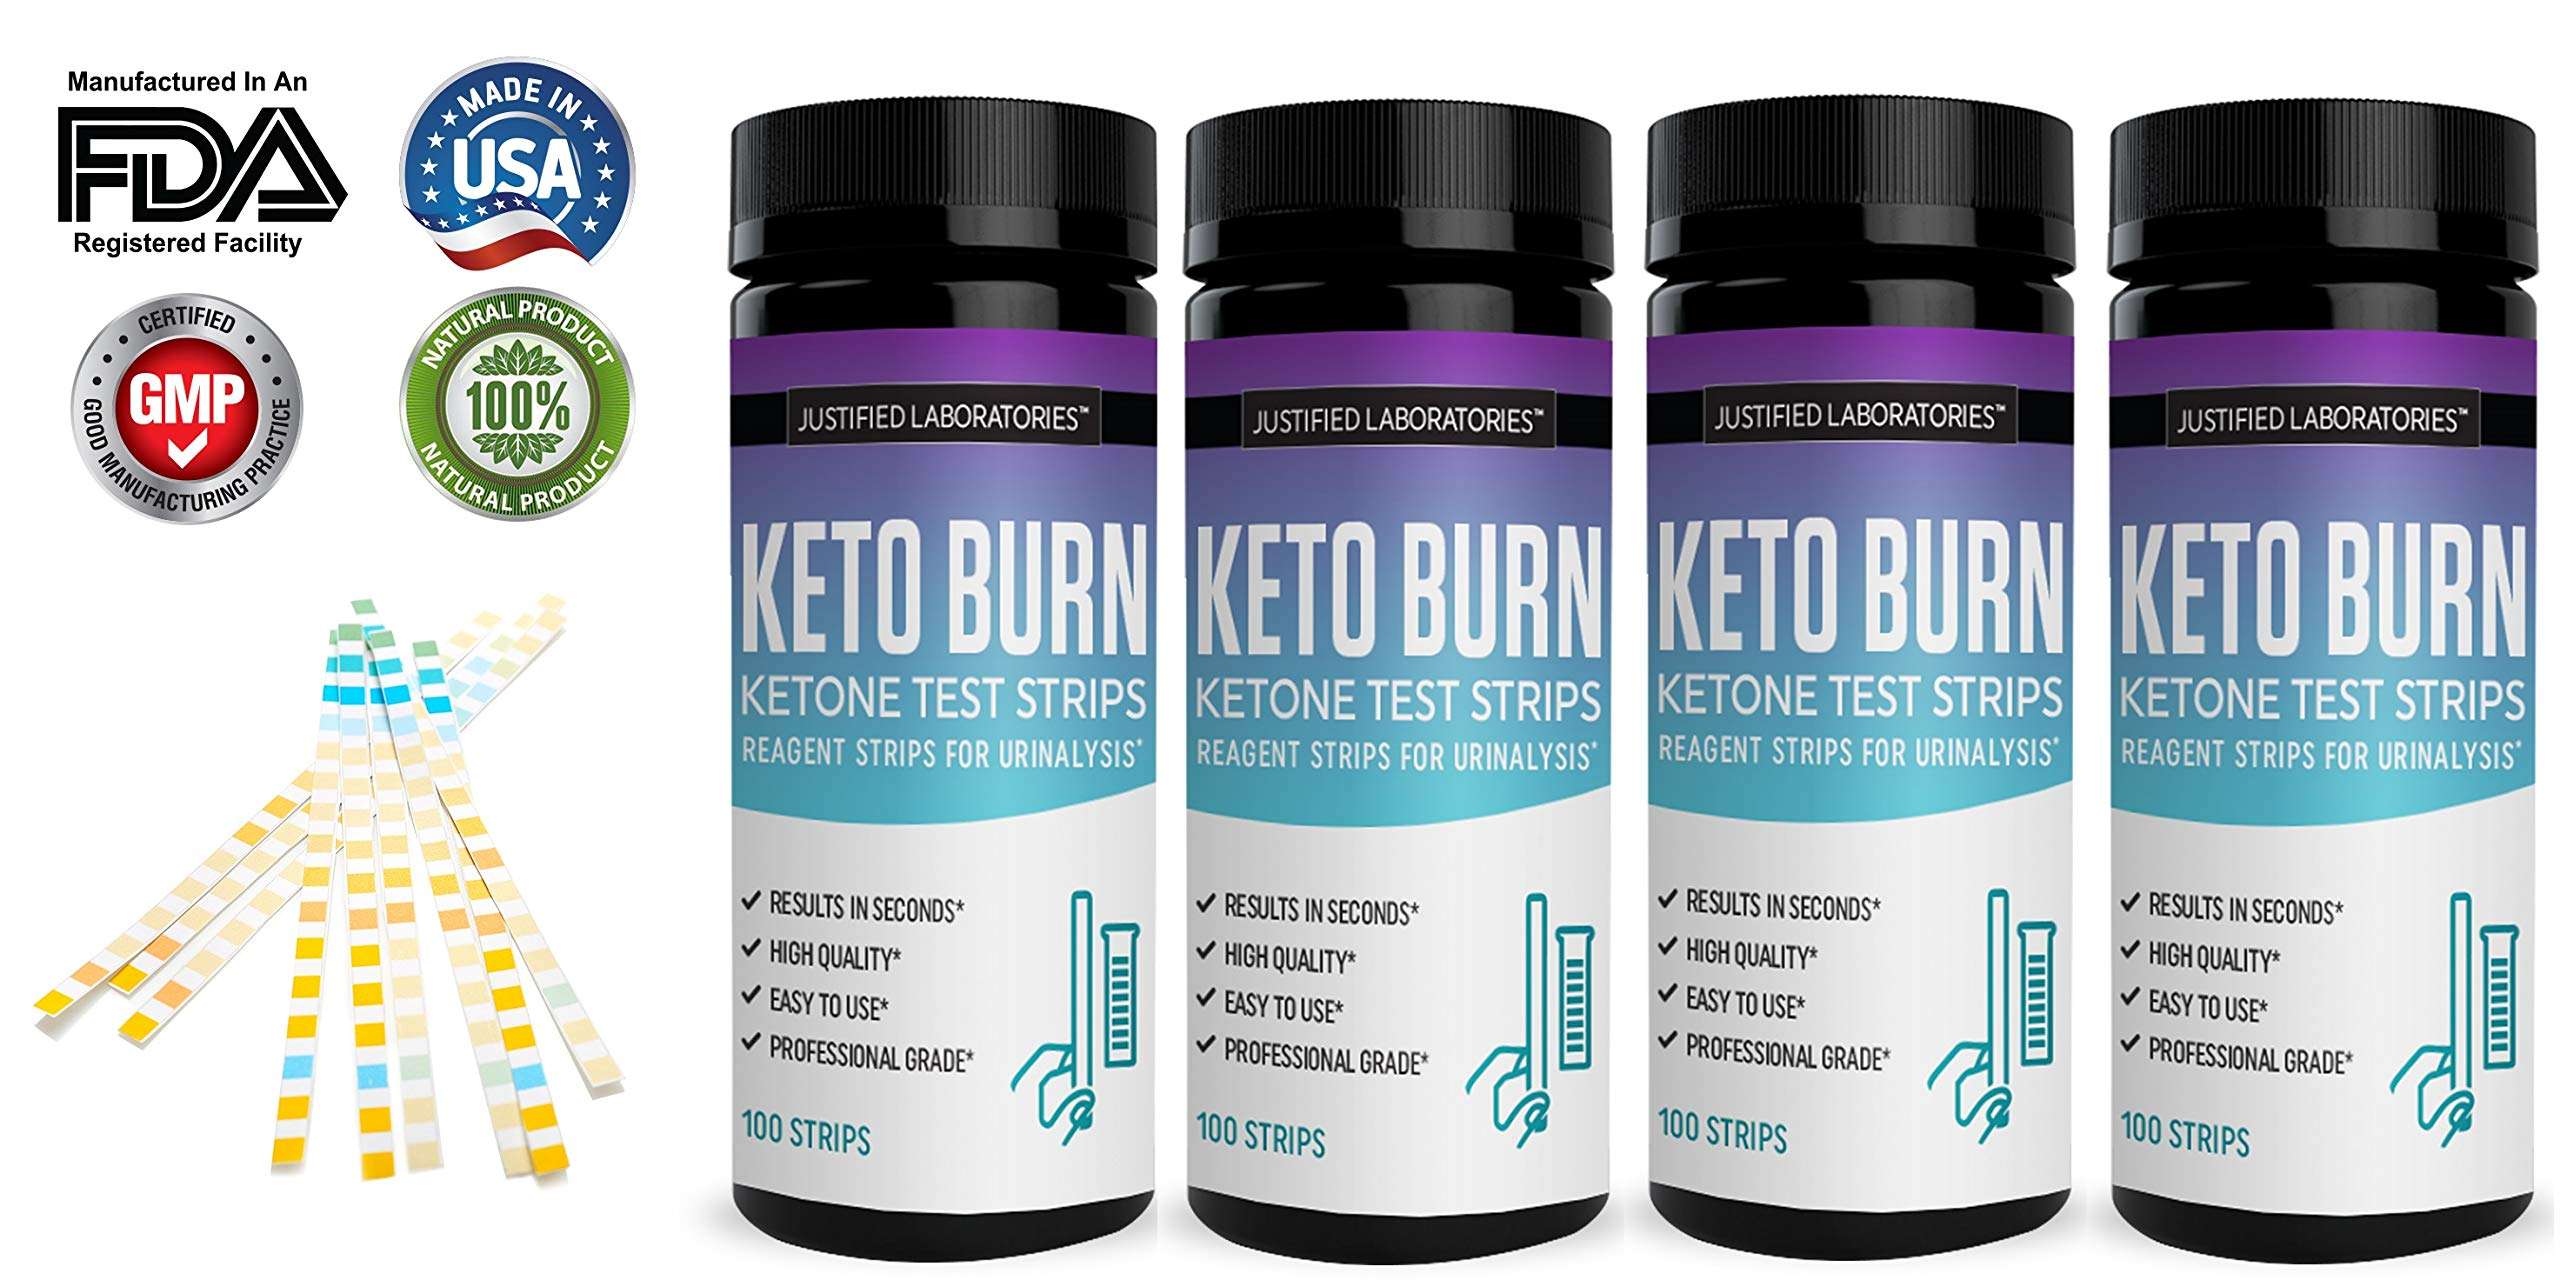 Keto Test Strips Testing Ketosis Levels on Low Carb Ketogenic Diet 100 Urinalysis Tester Strips Accurate Meter Measurement of Urine Ketones Test 4 Bottles